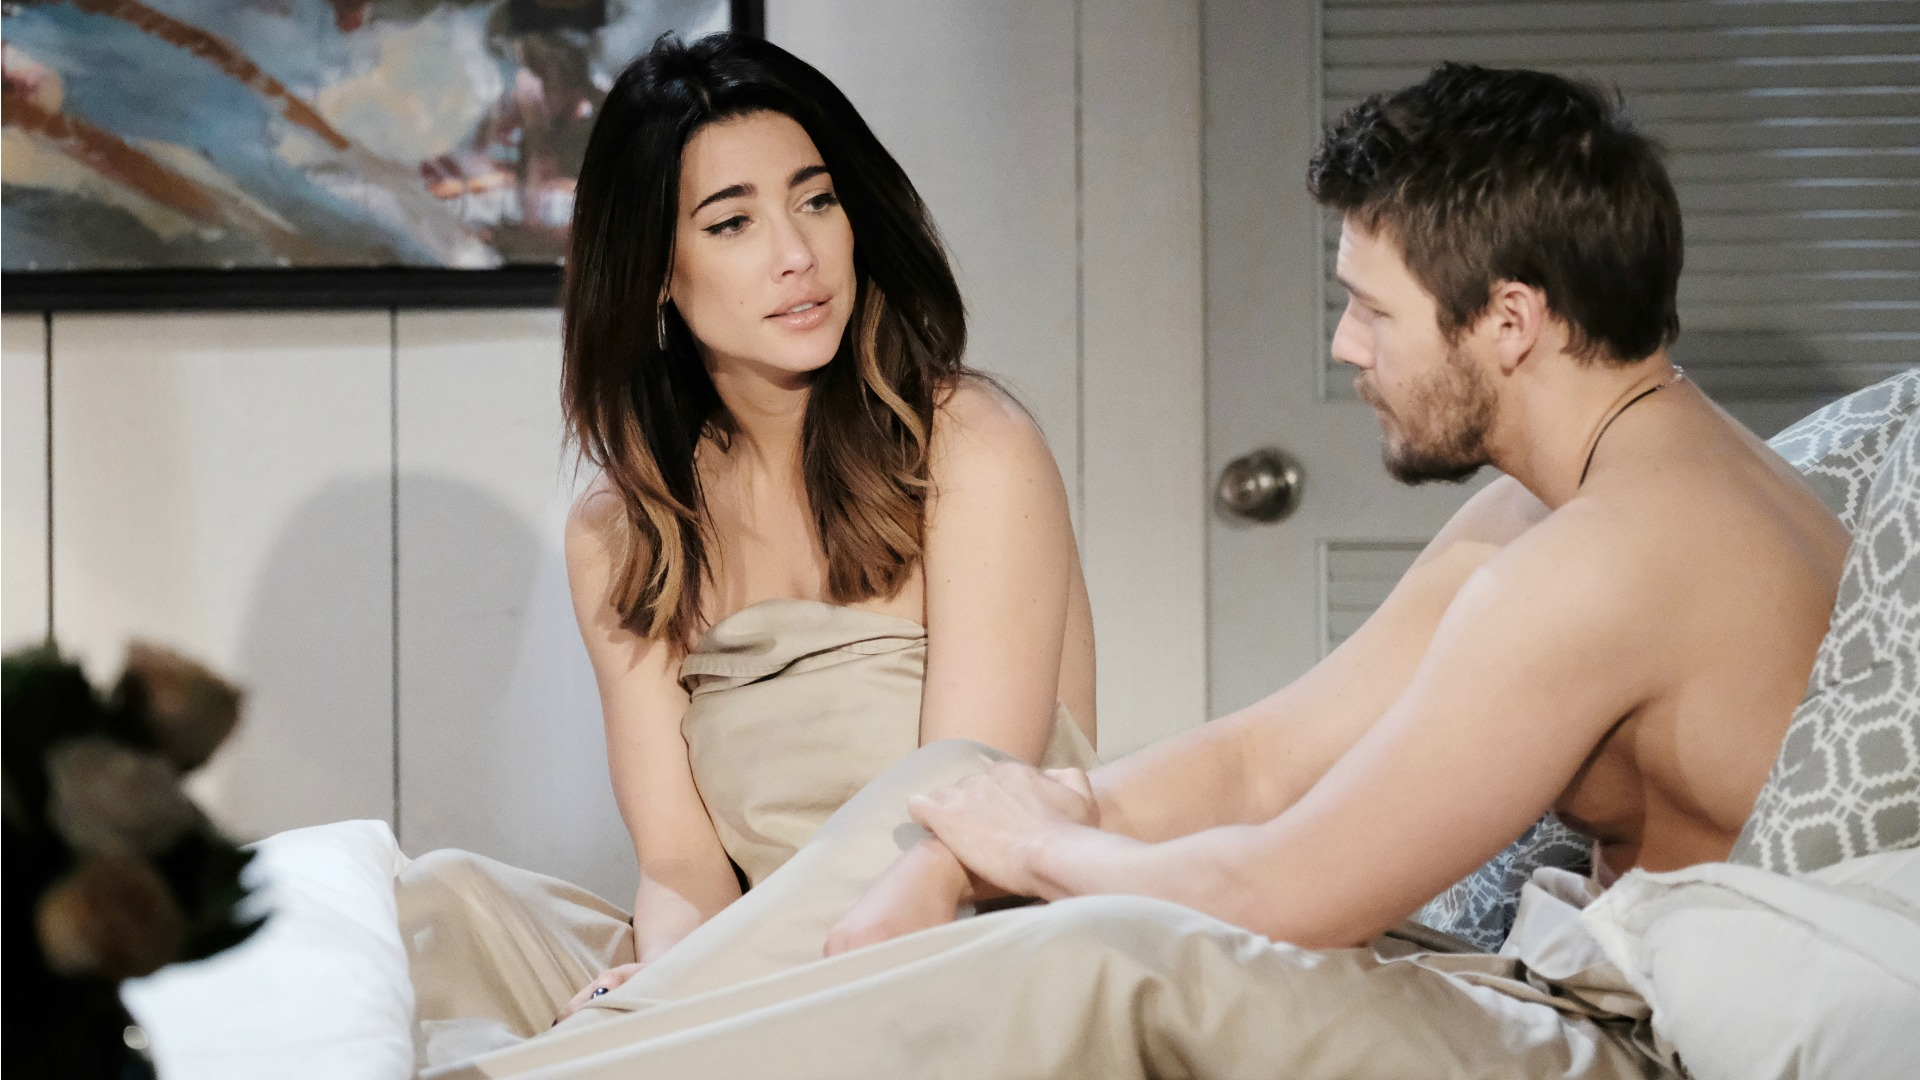 Tensions rise between Steffy and Liam as she contemplates Eric and Quinn's generous offer of moving back into the Forrester Mansion.